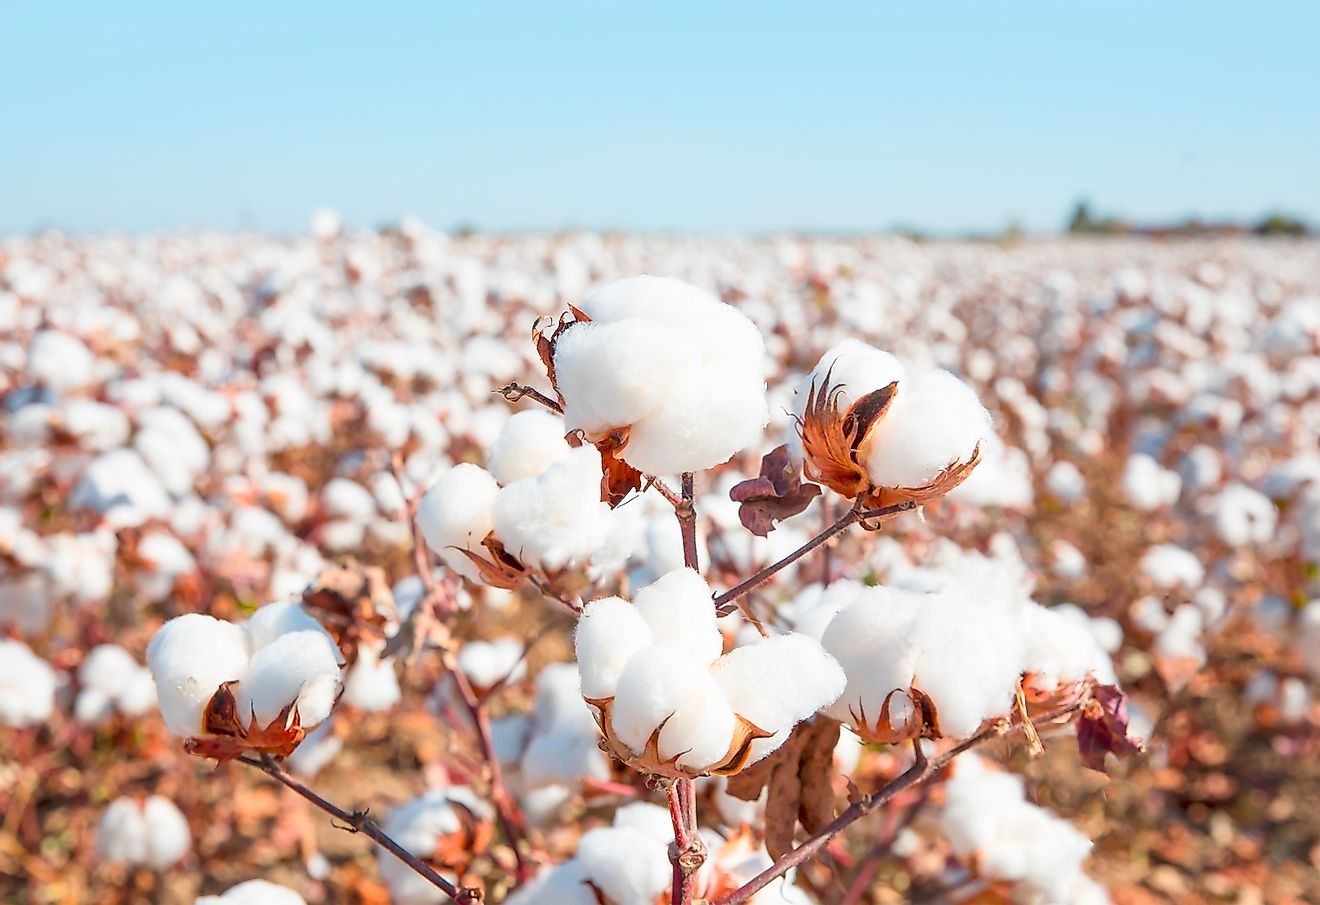 Cotton growing in a field. Image credit: Shutterstock.com